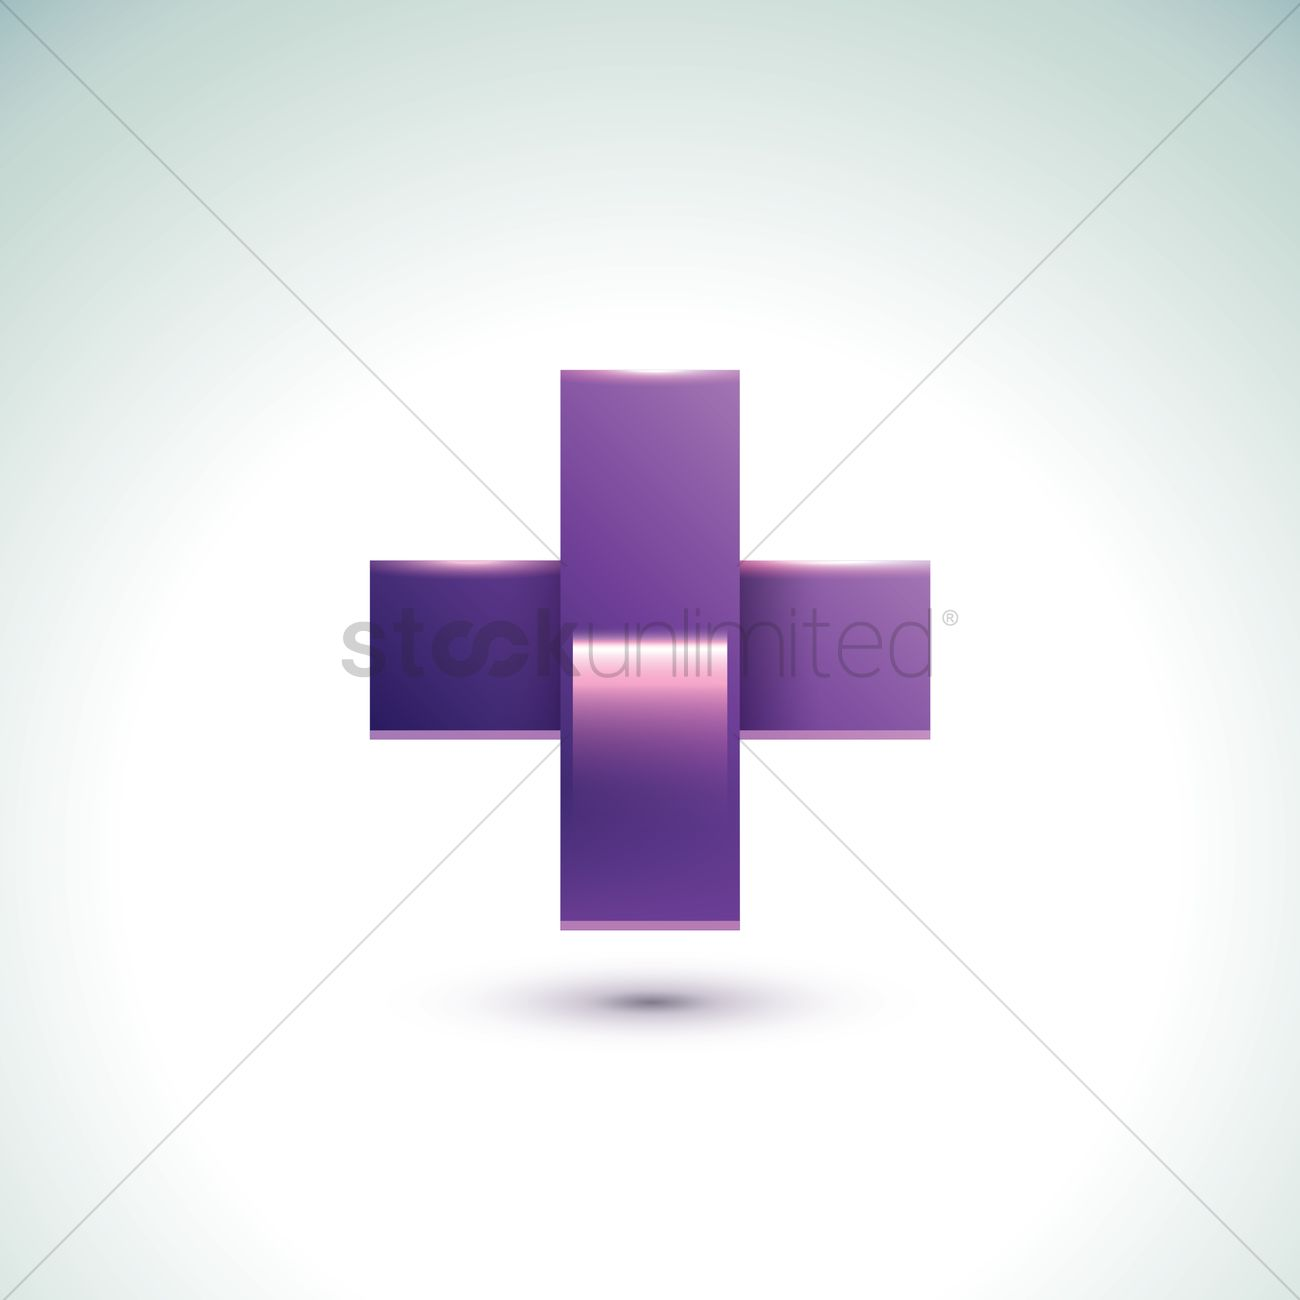 Plus Sign Vector Image 1630931 Stockunlimited